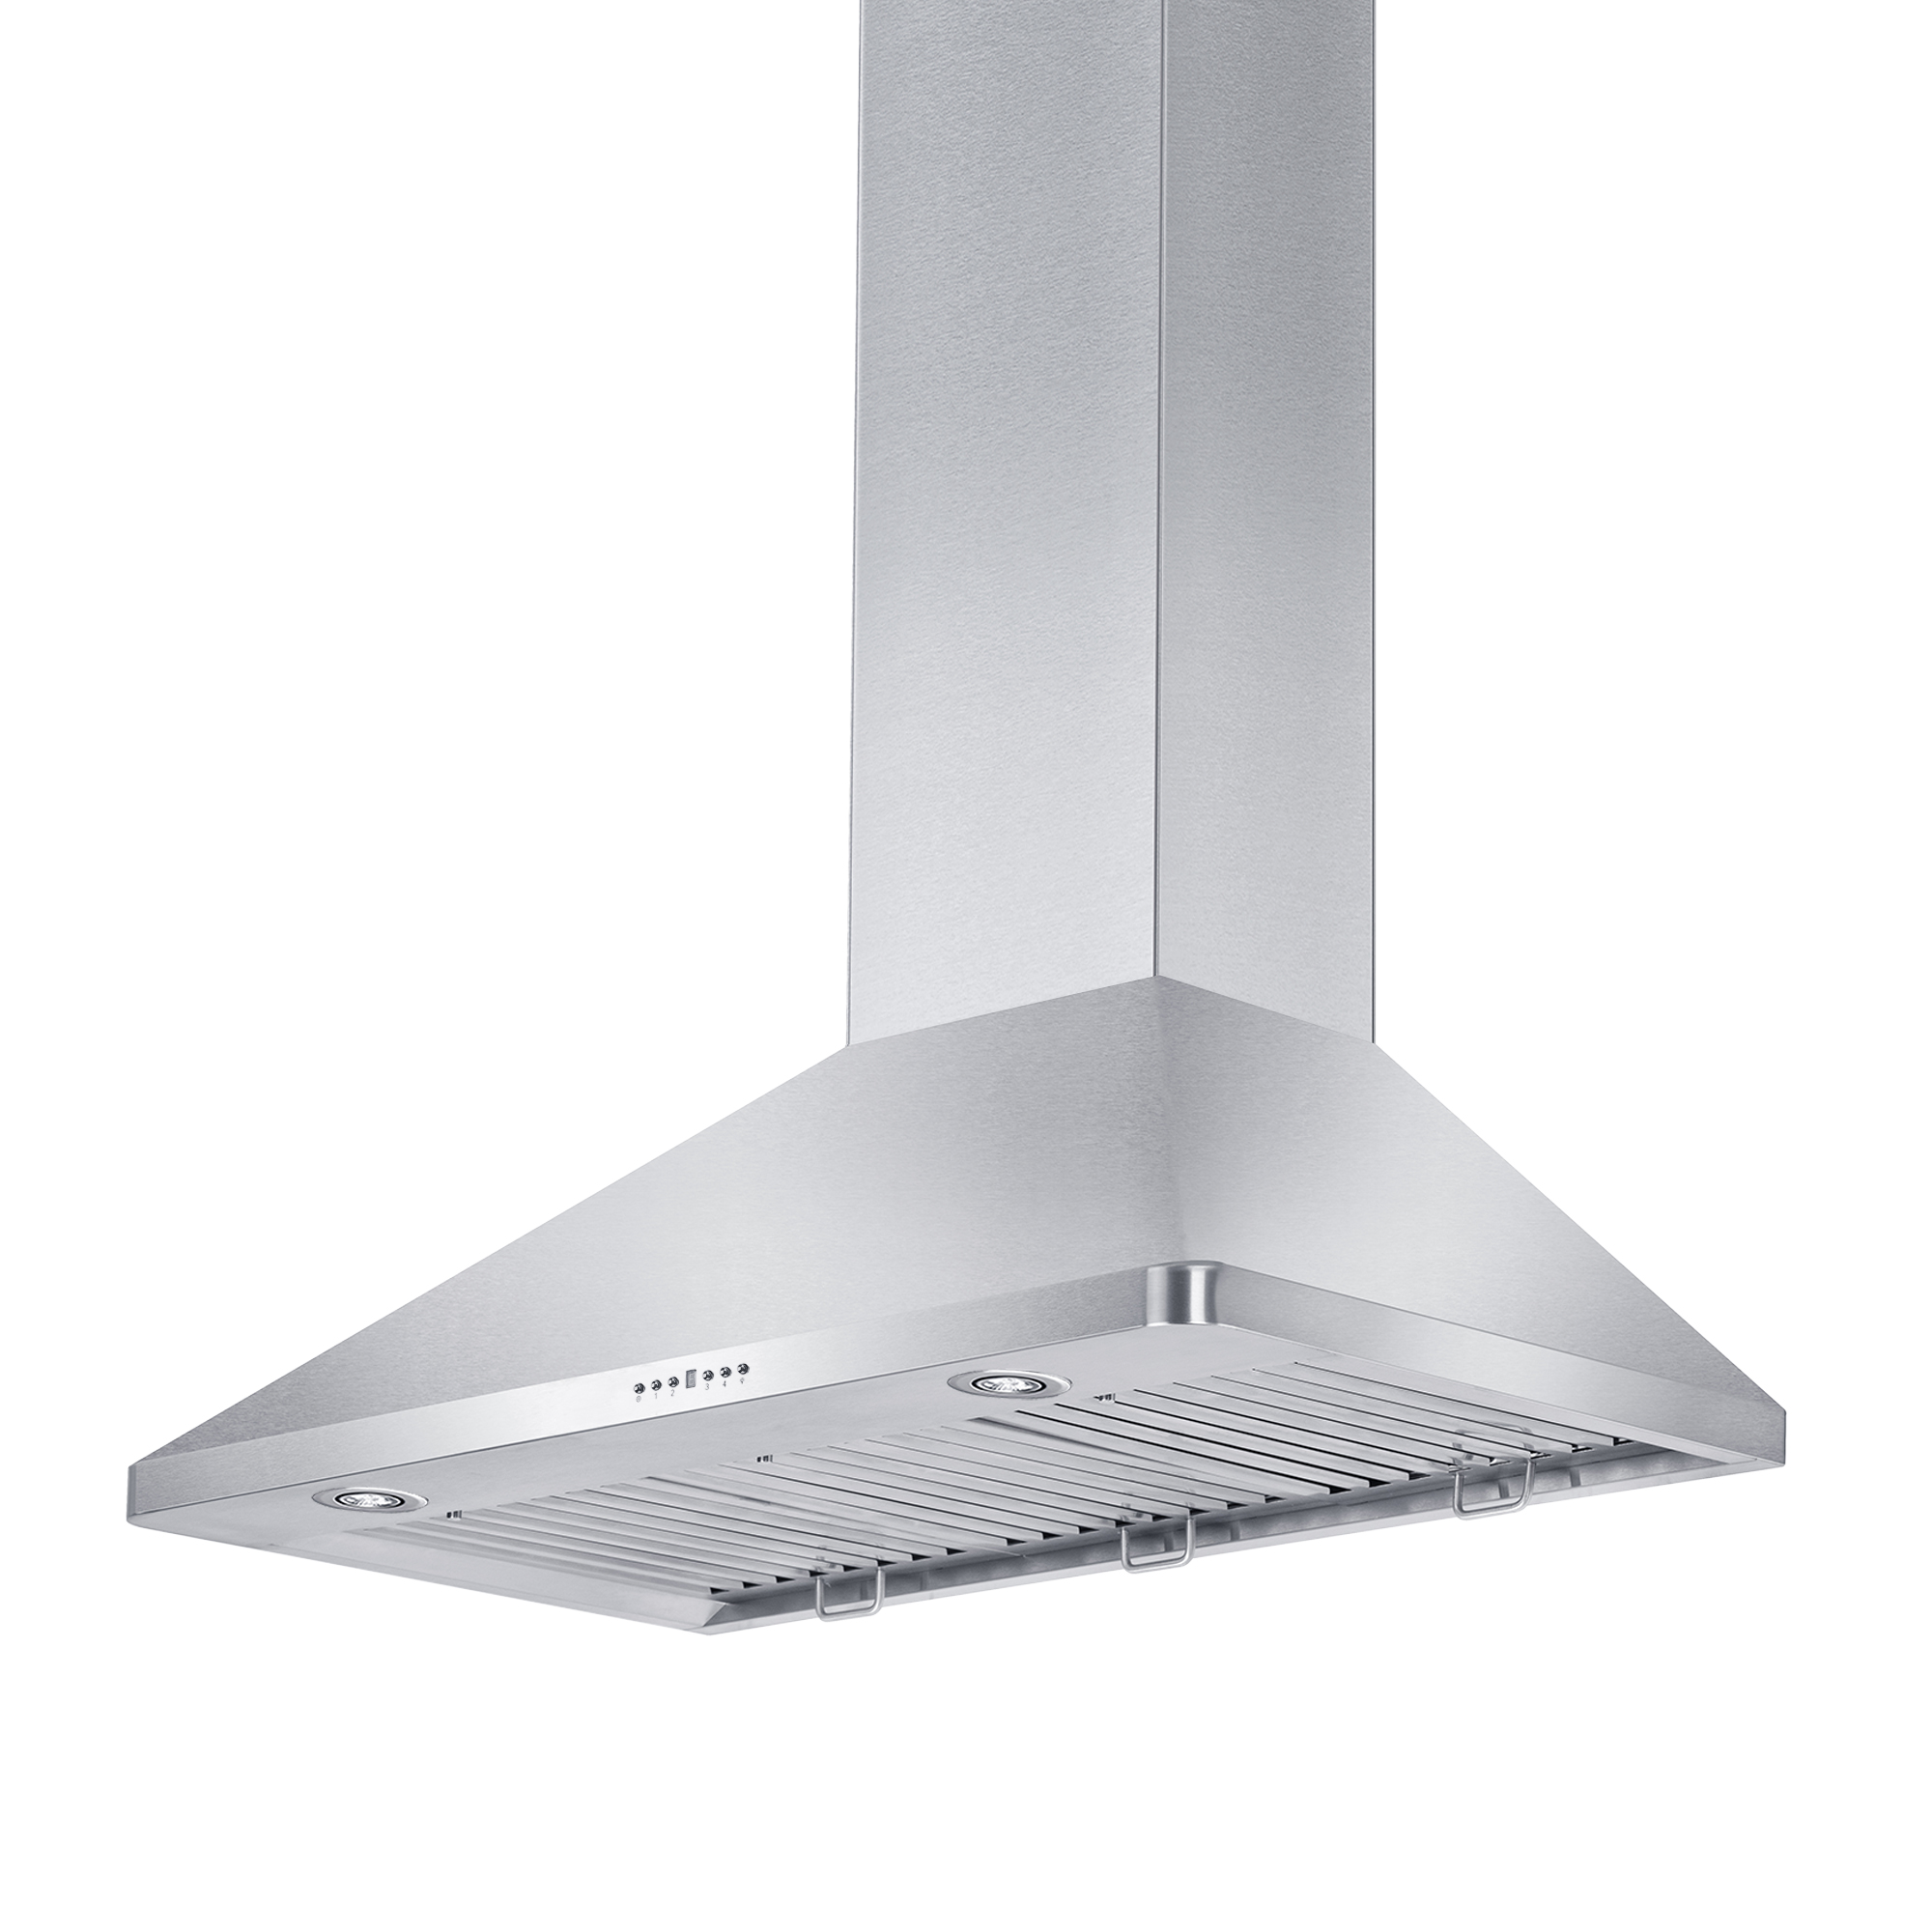 zline-stainless-steel-wall-mounted-range-hood-KF1-side.jpg